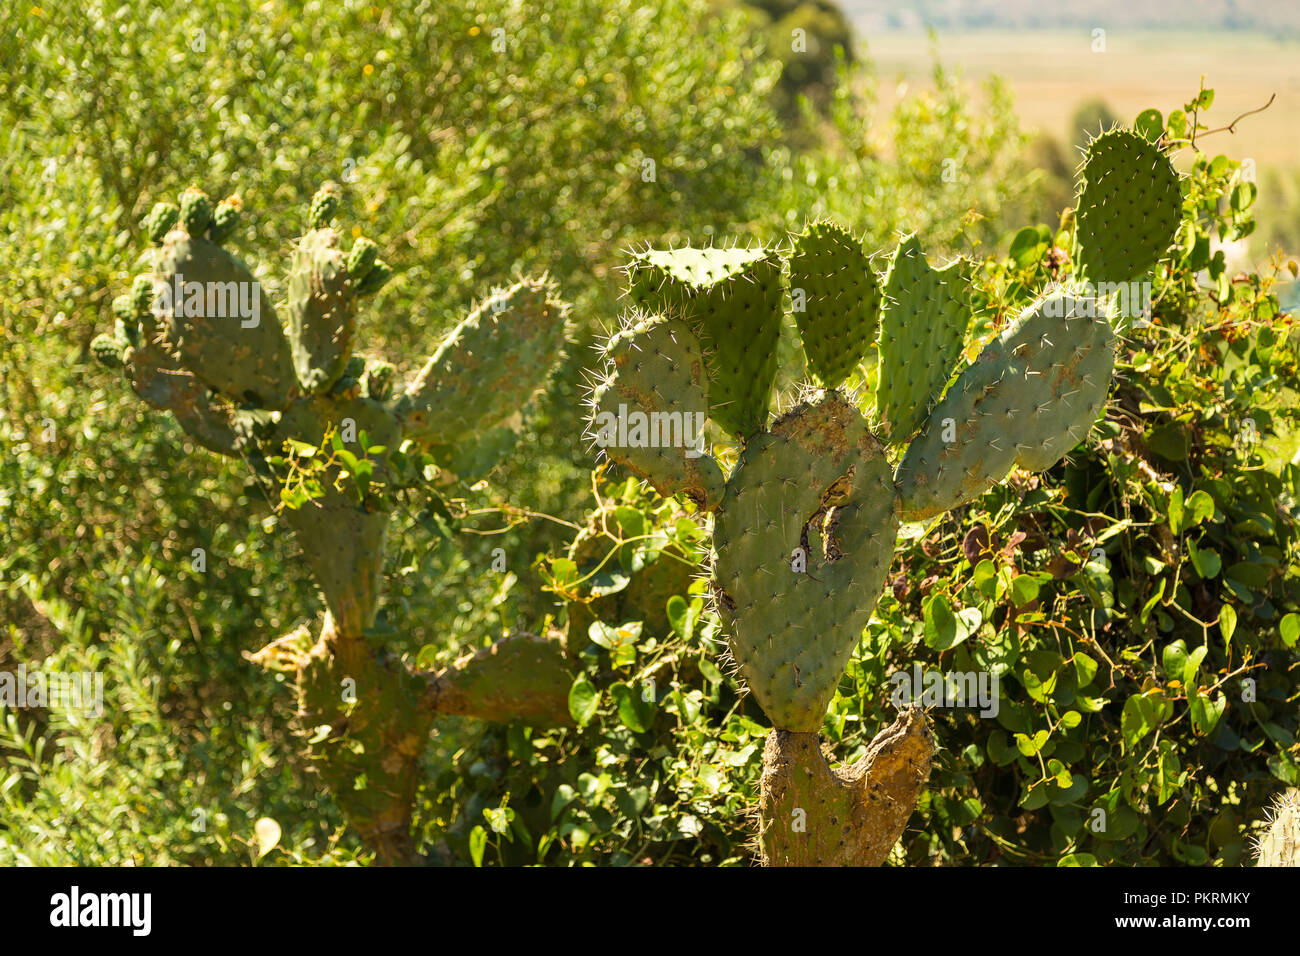 Prickly pears. Opuntia ficus-indica. also known as indian figs, opuntia, barbary figs, and cactus pears. Photo taken in Albania. - Stock Image